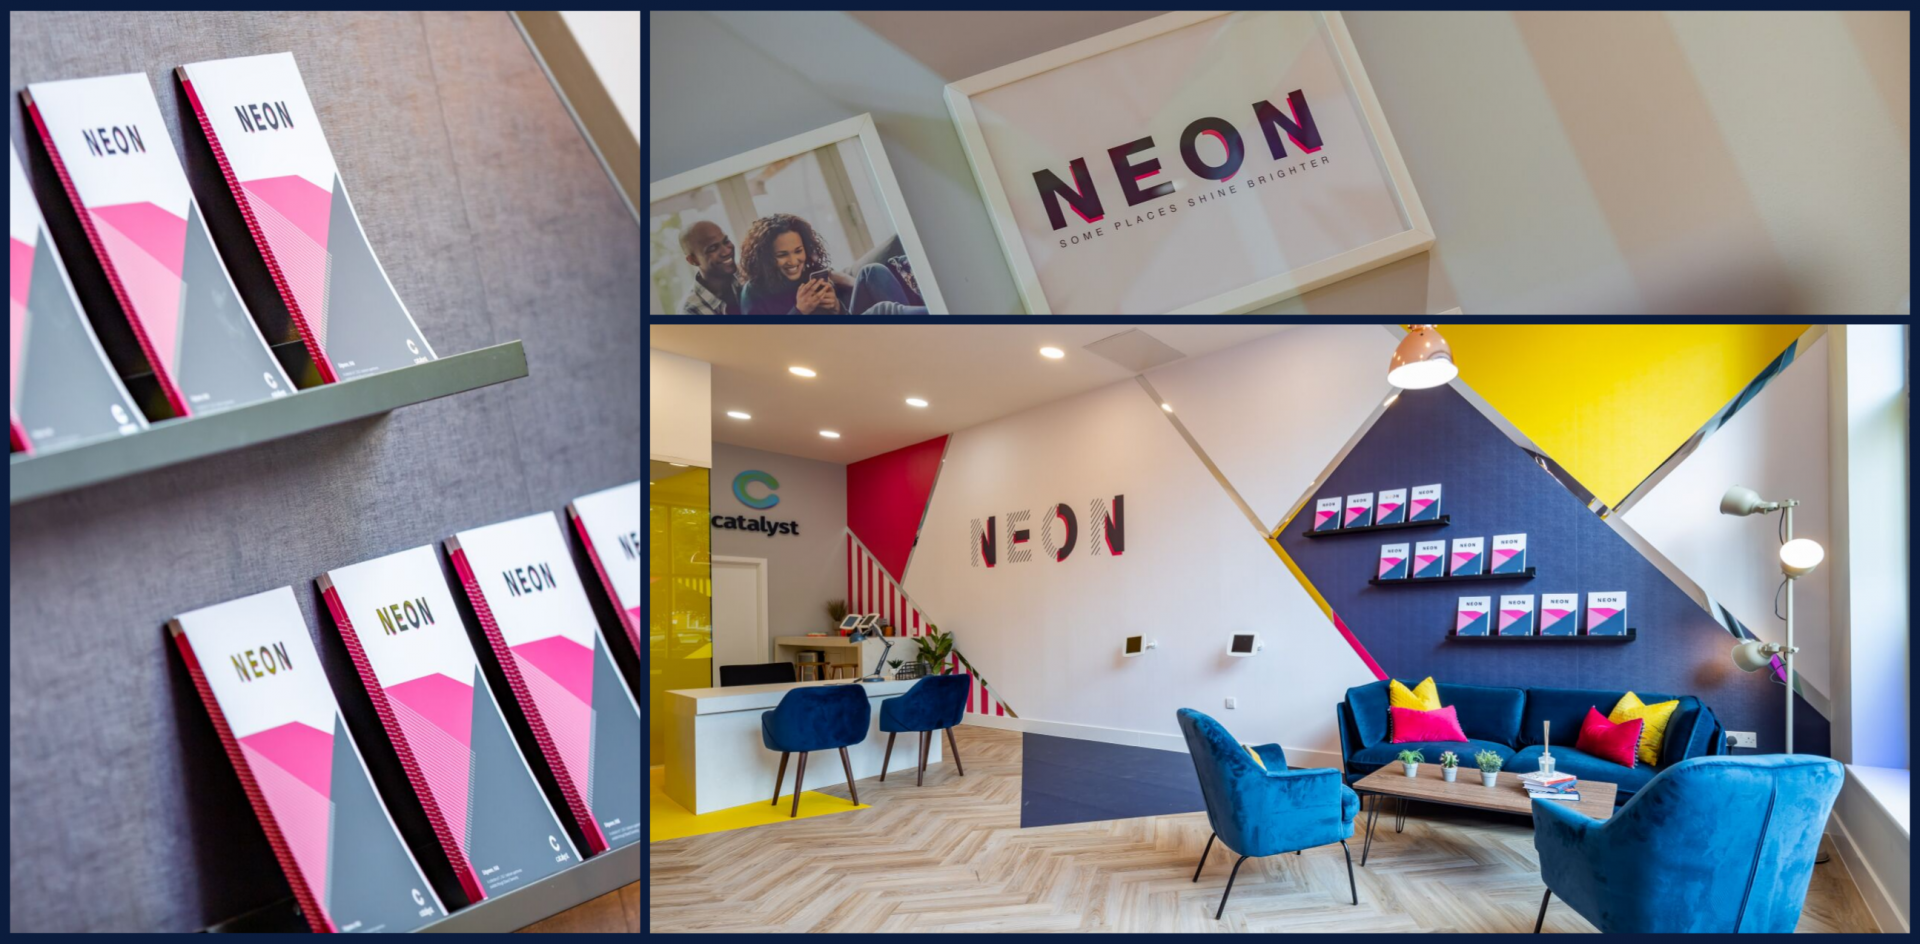 The marketing suite for NEON, Cataylst designed with persona intelligence